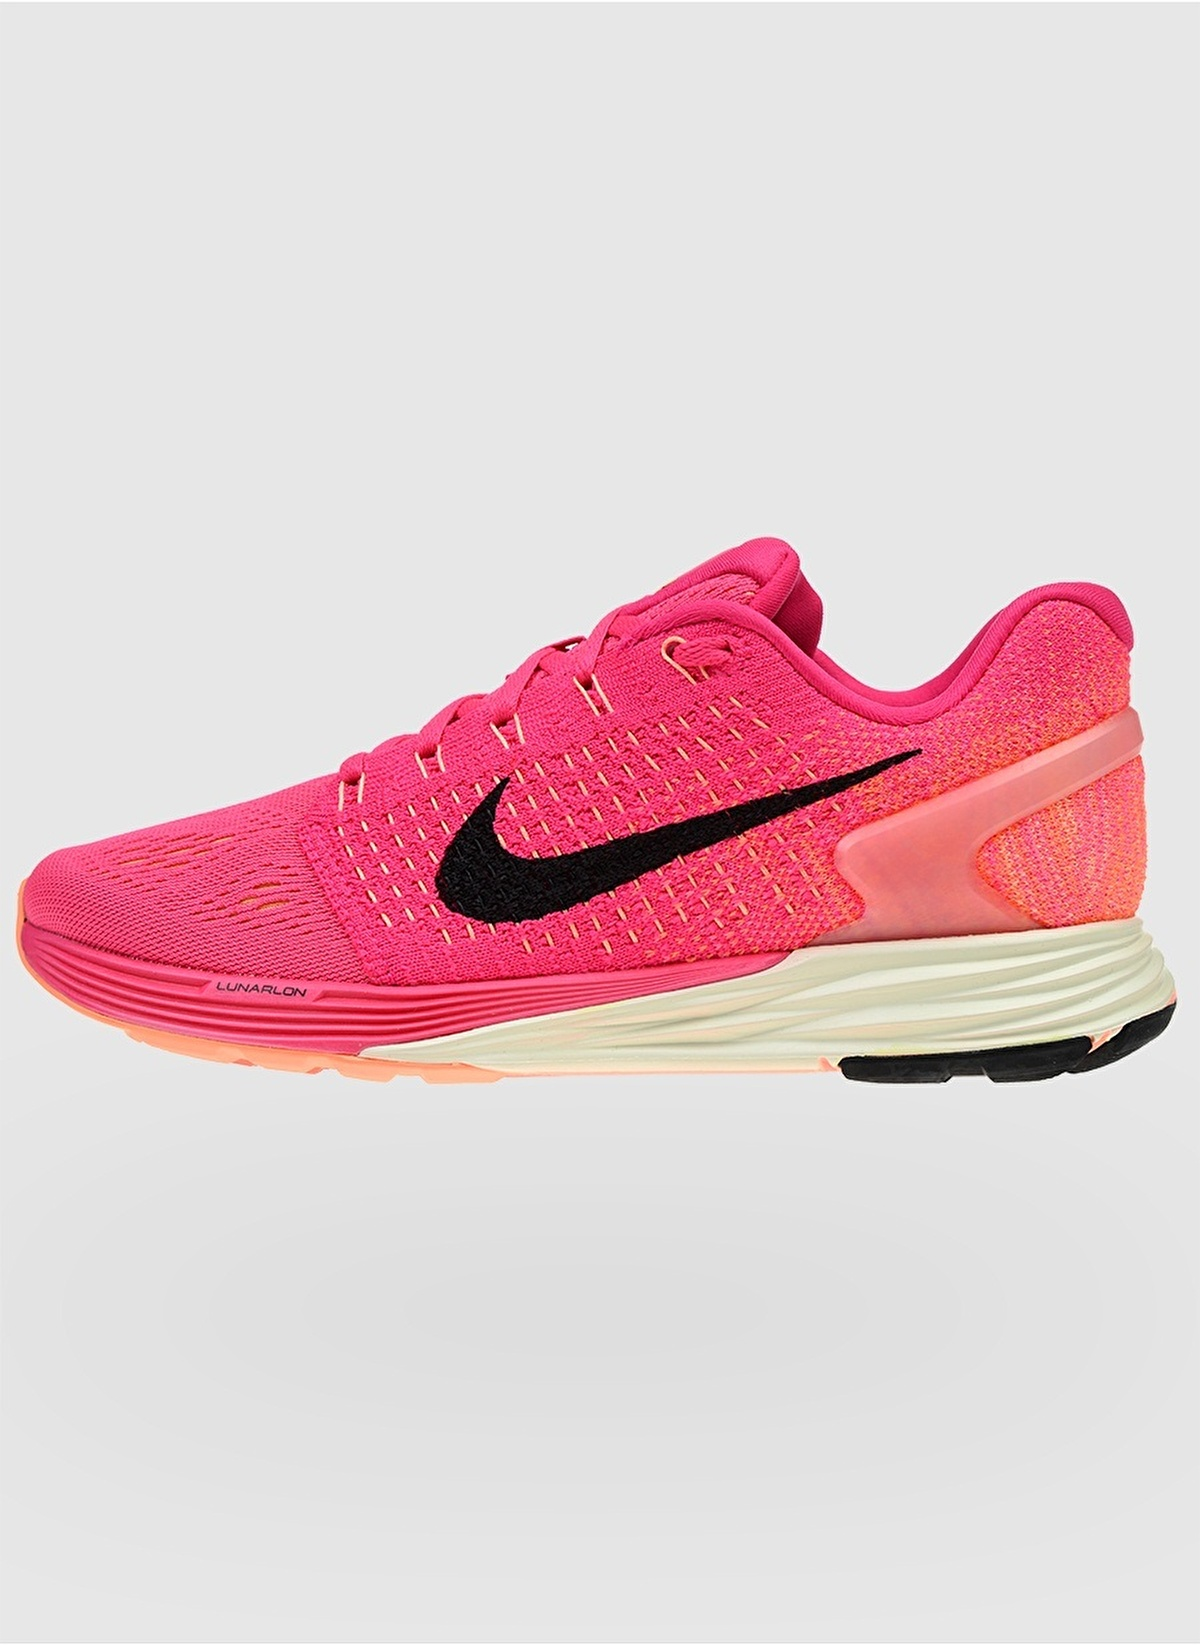 separation shoes 5fa24 170fe promo code womens nike pink pink running shoes lunarglide 7 foil pow sunset  glow 3a9c6 1a76b  where to buy nike wmns nike lunarglide 7 pembe 9d8df 8bc46